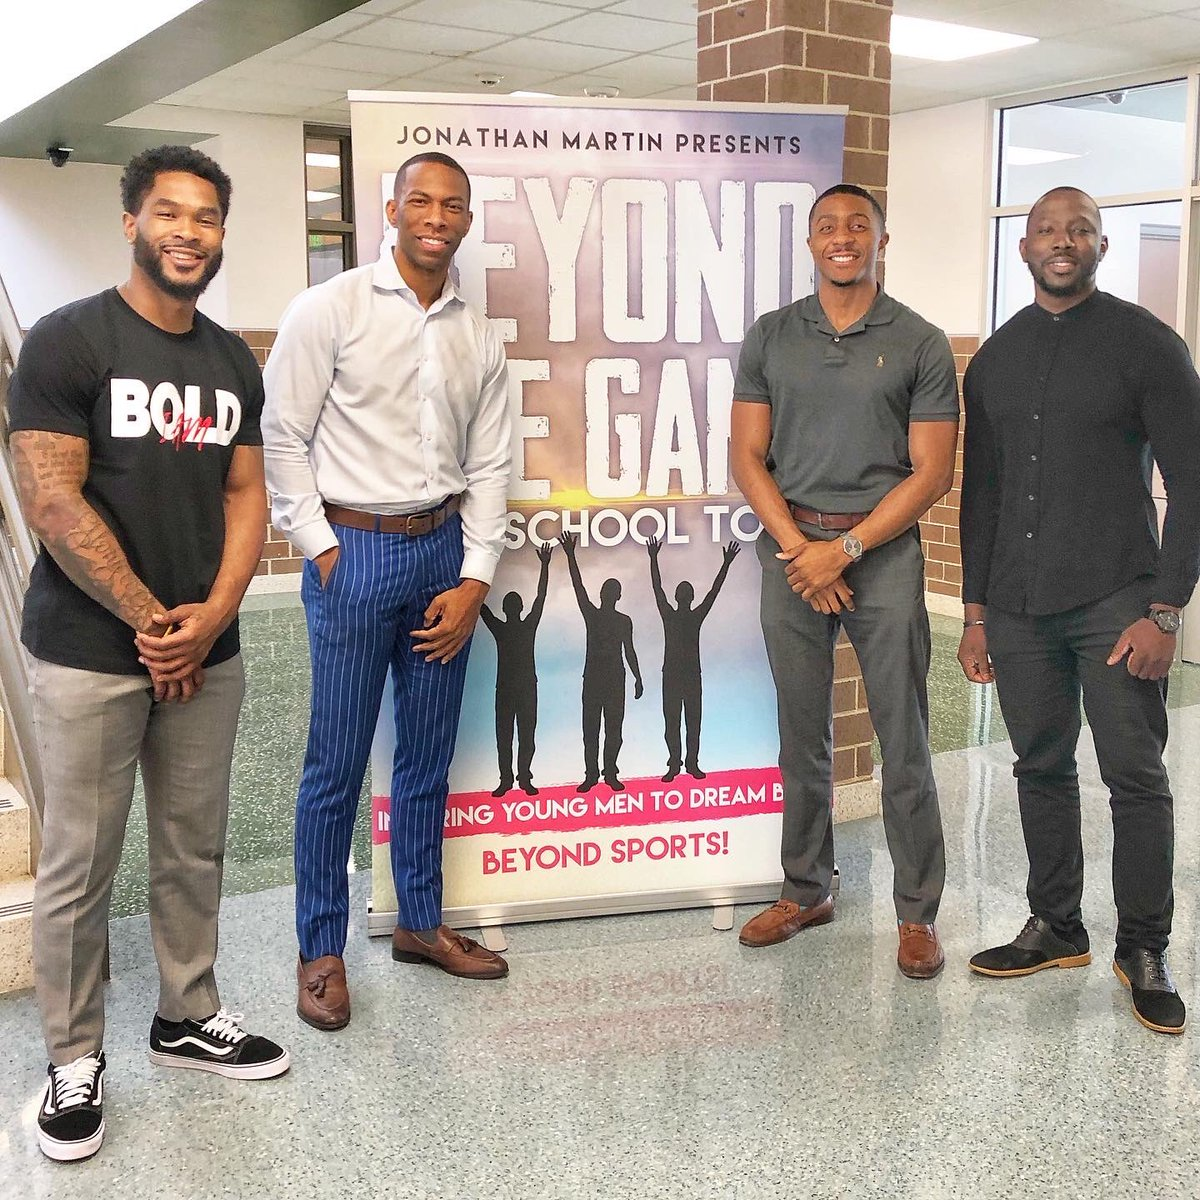 My #BeyondTheGame tour stopped at Worthing High School @HoustonISD! We spoke to the 11th grade young men.